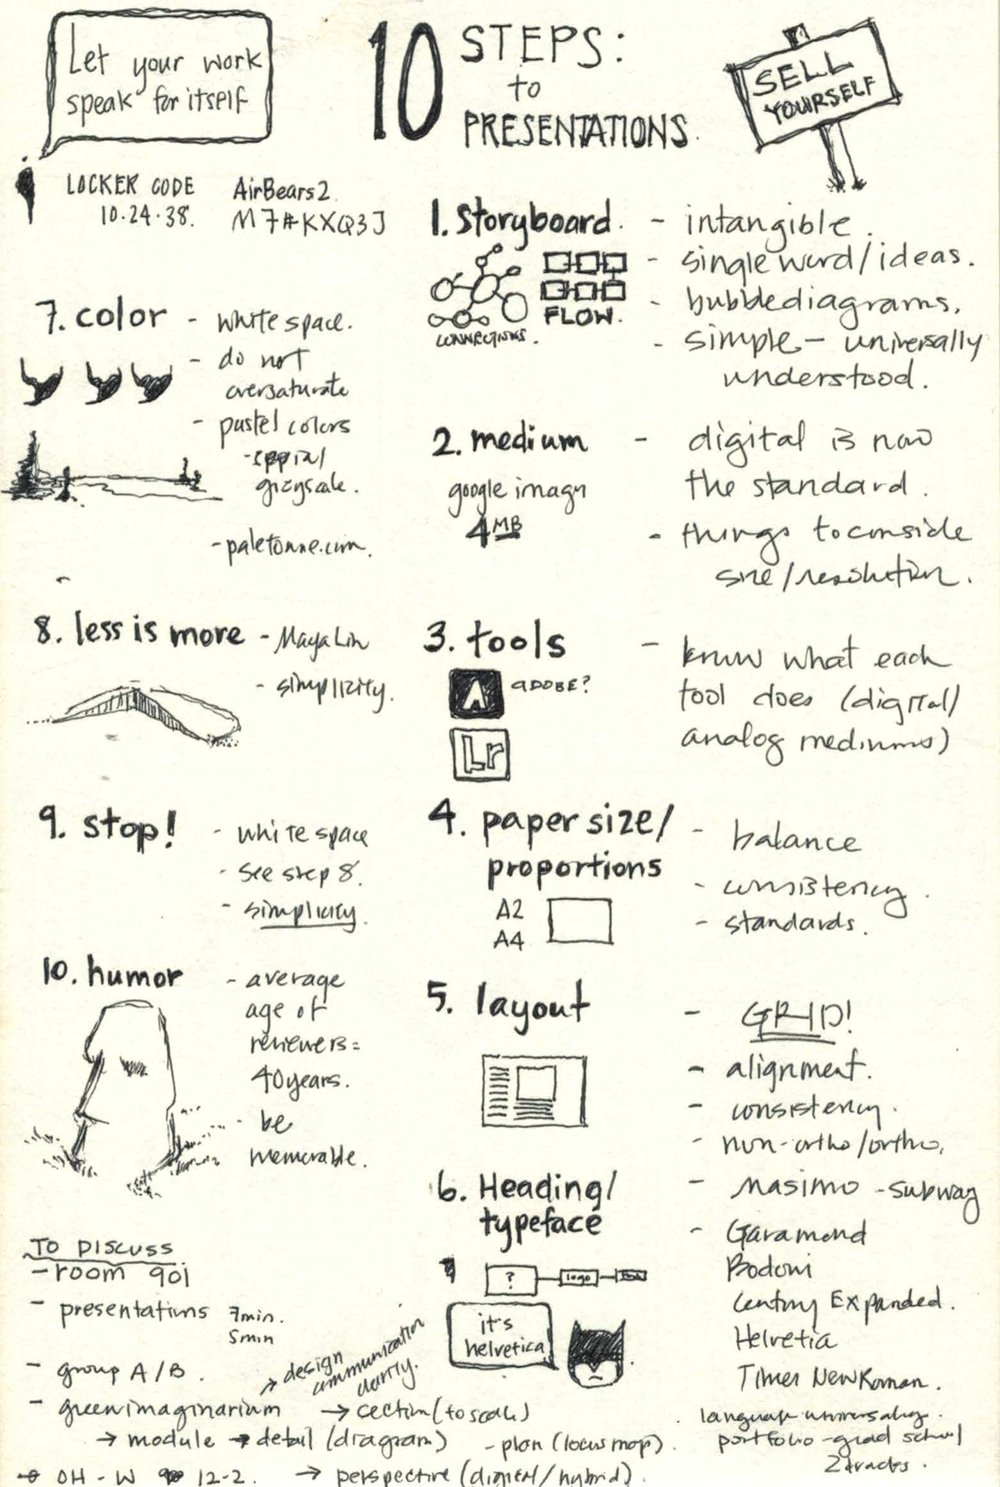 Notes on graphic design principles (2016)